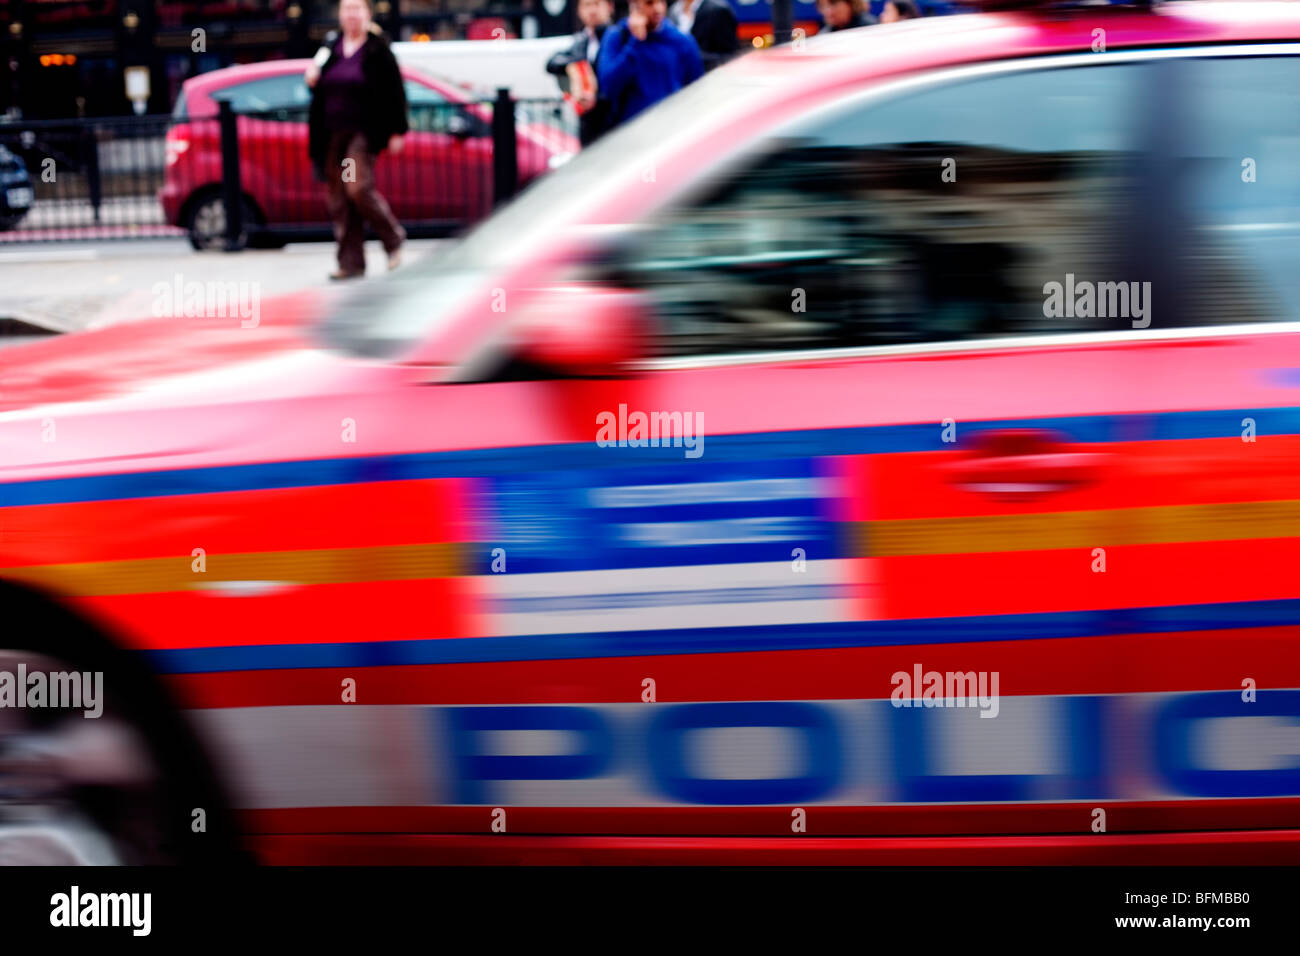 Police car at speed, Marylebone Road, London, England, UK, Europe, Europe Stock Photo